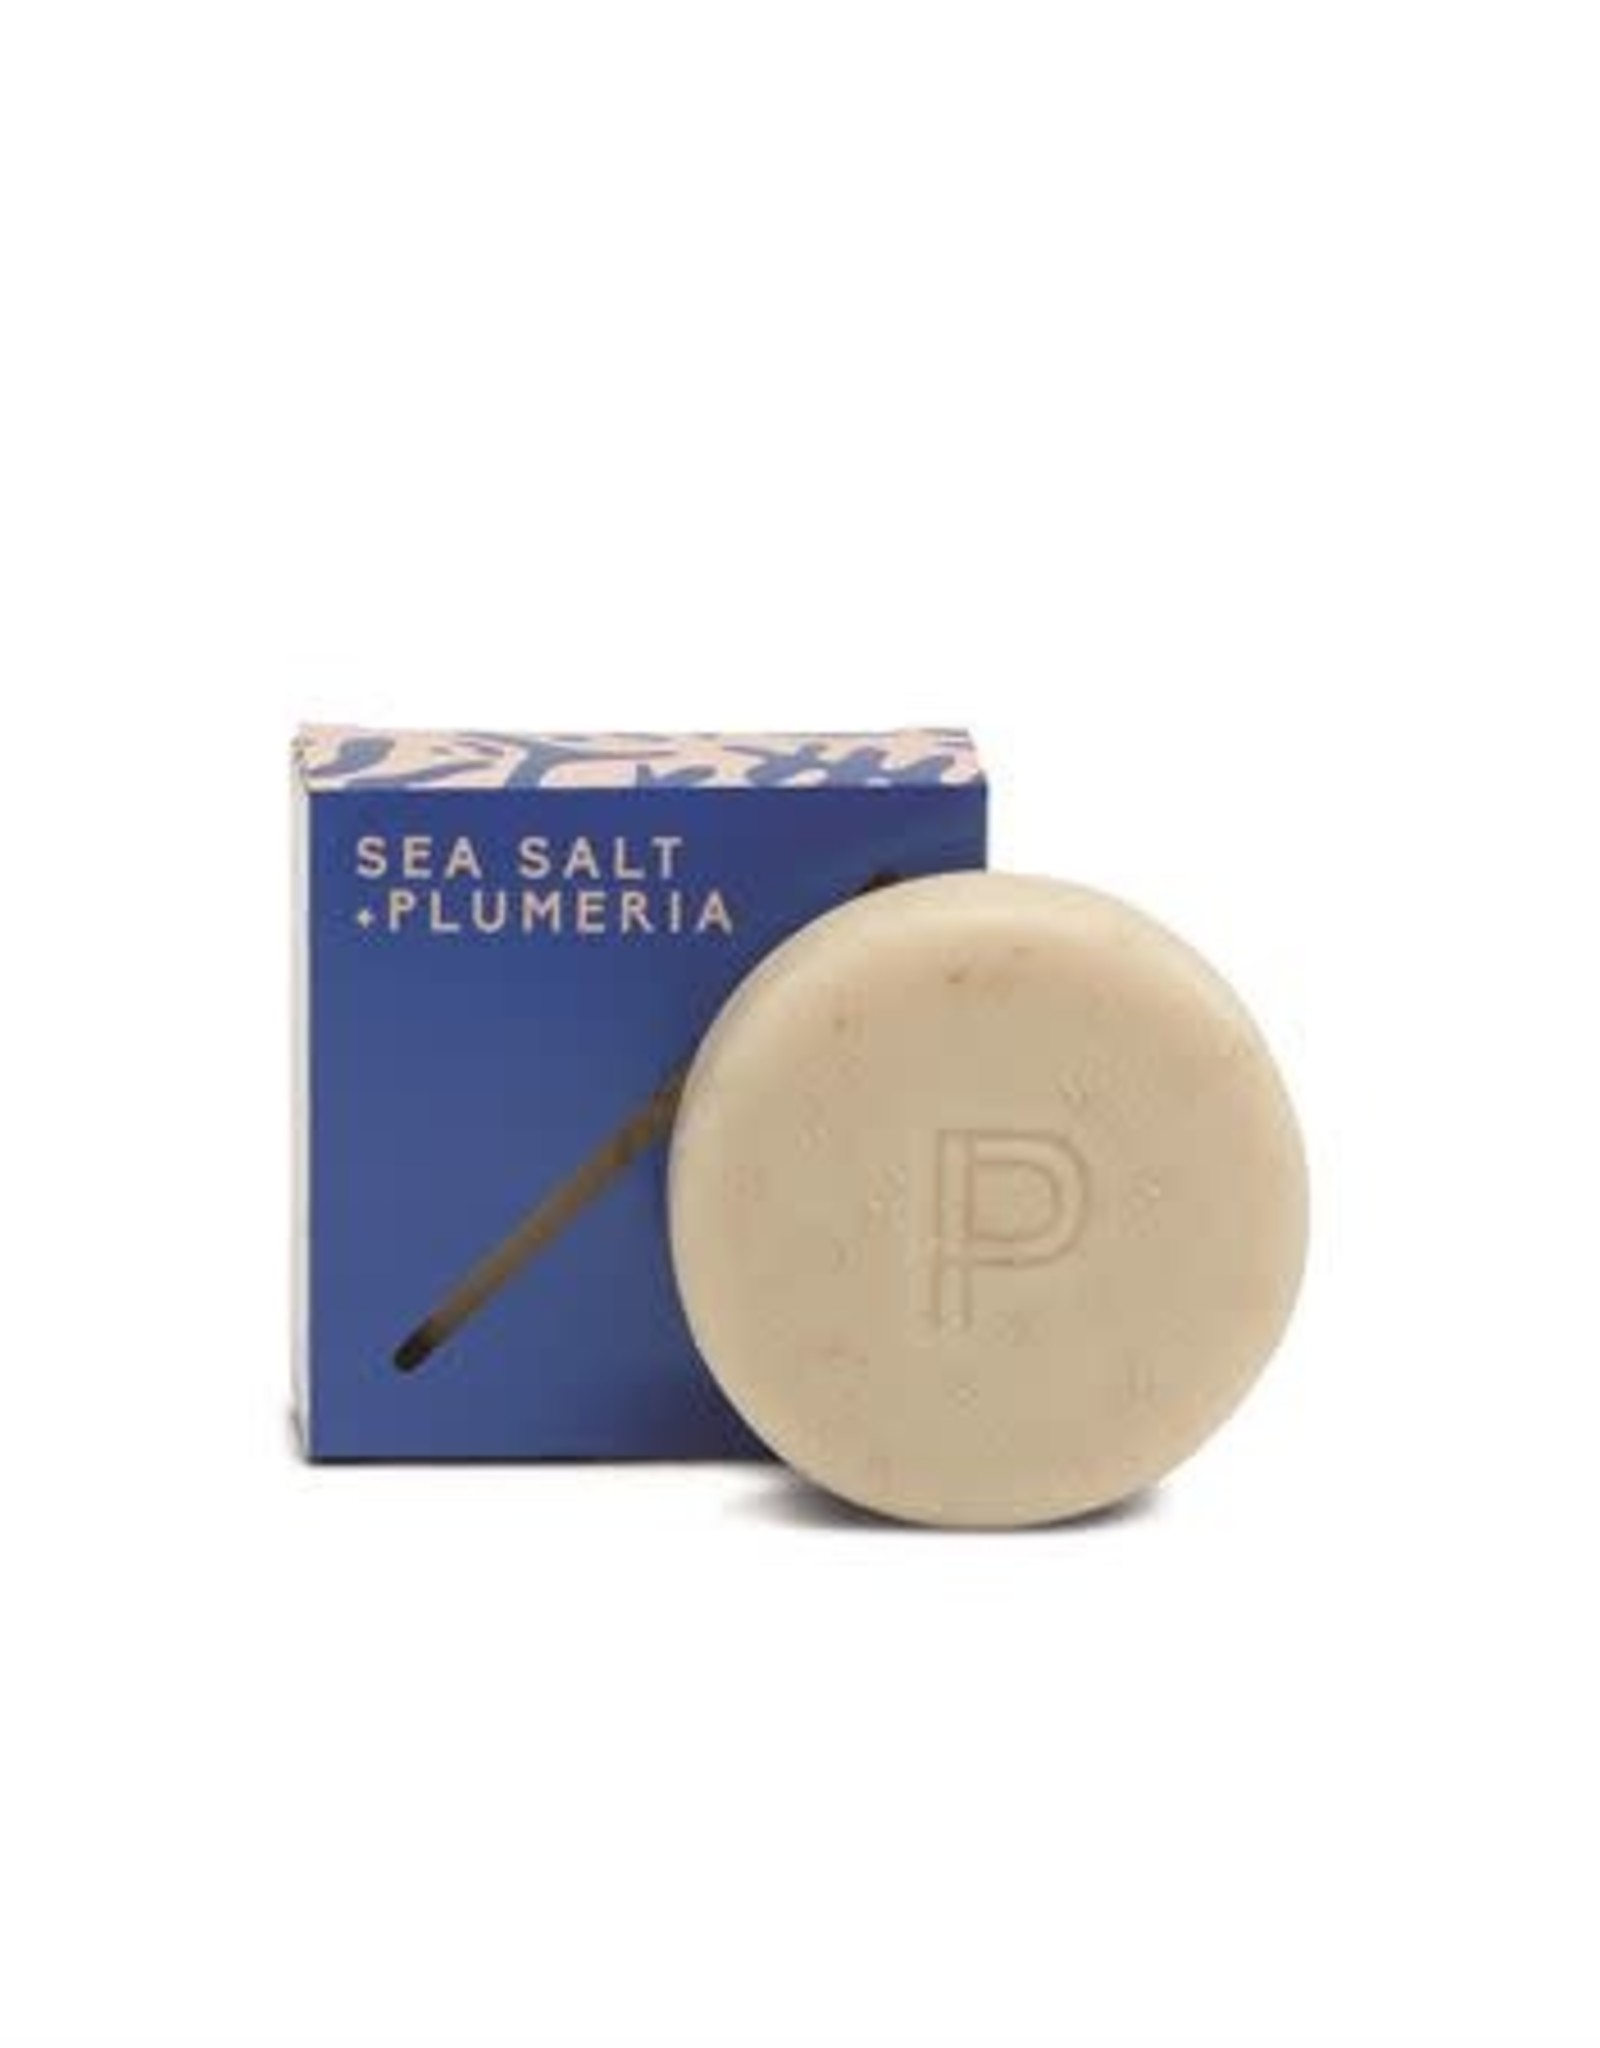 Soap Bar - Sea Salt Plumeria